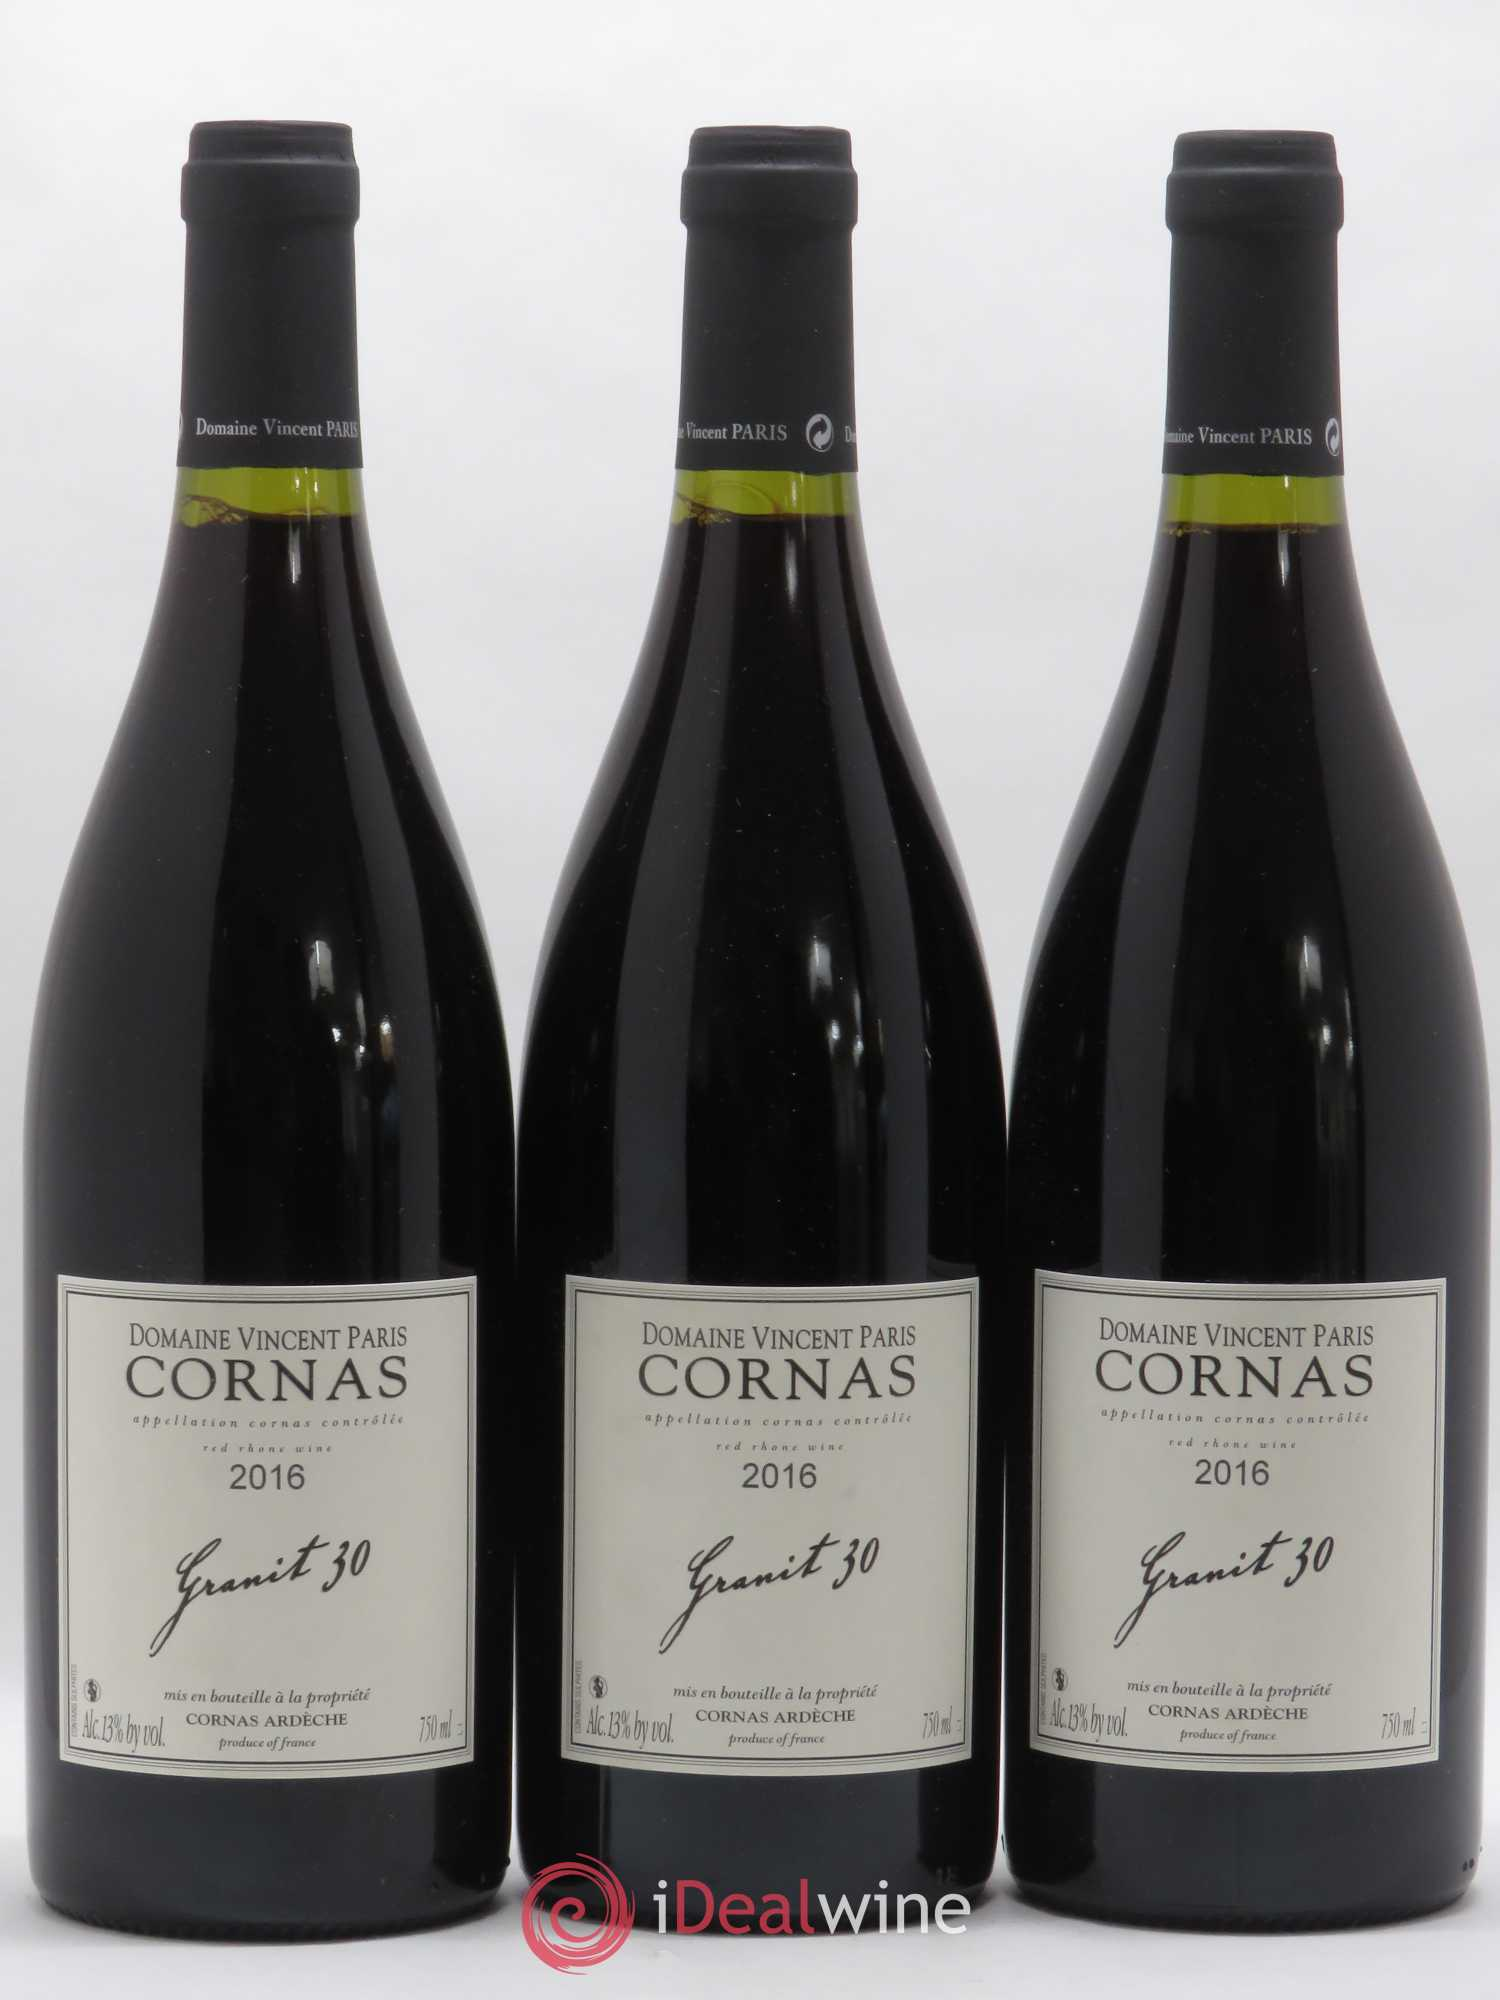 Cornas Granit 30 Vincent Paris  2016 - Lot of 3 Bottles